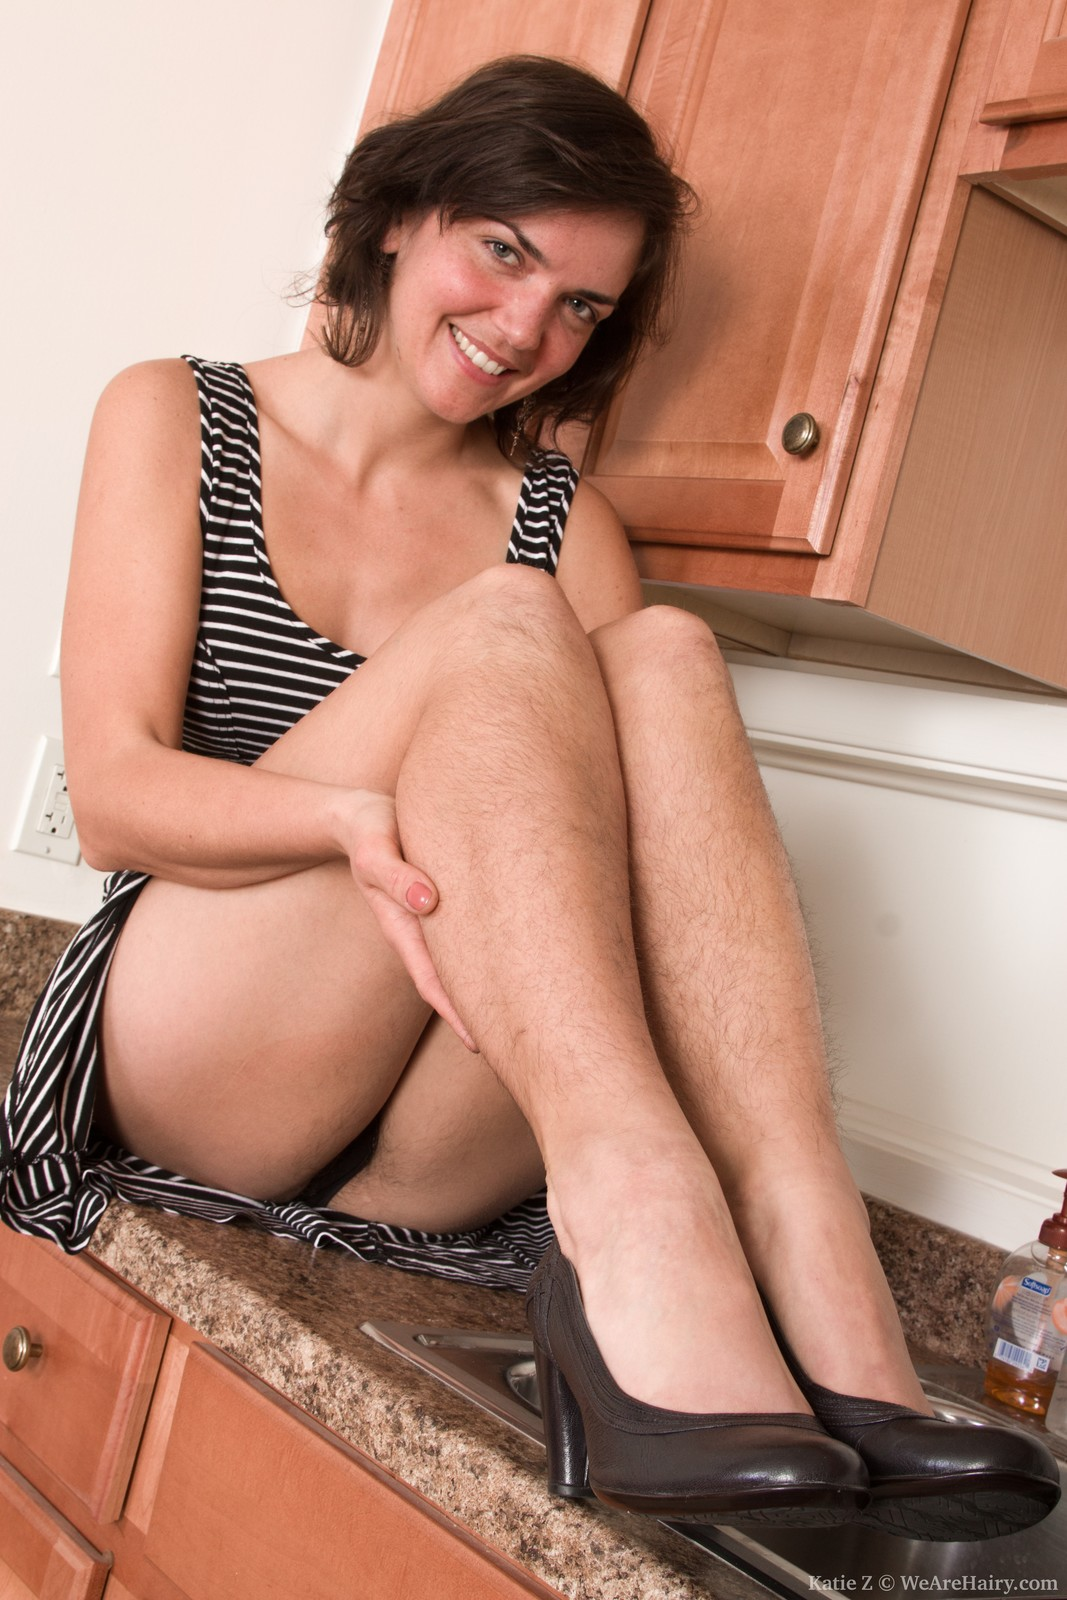 Girl with hairy legs fucks